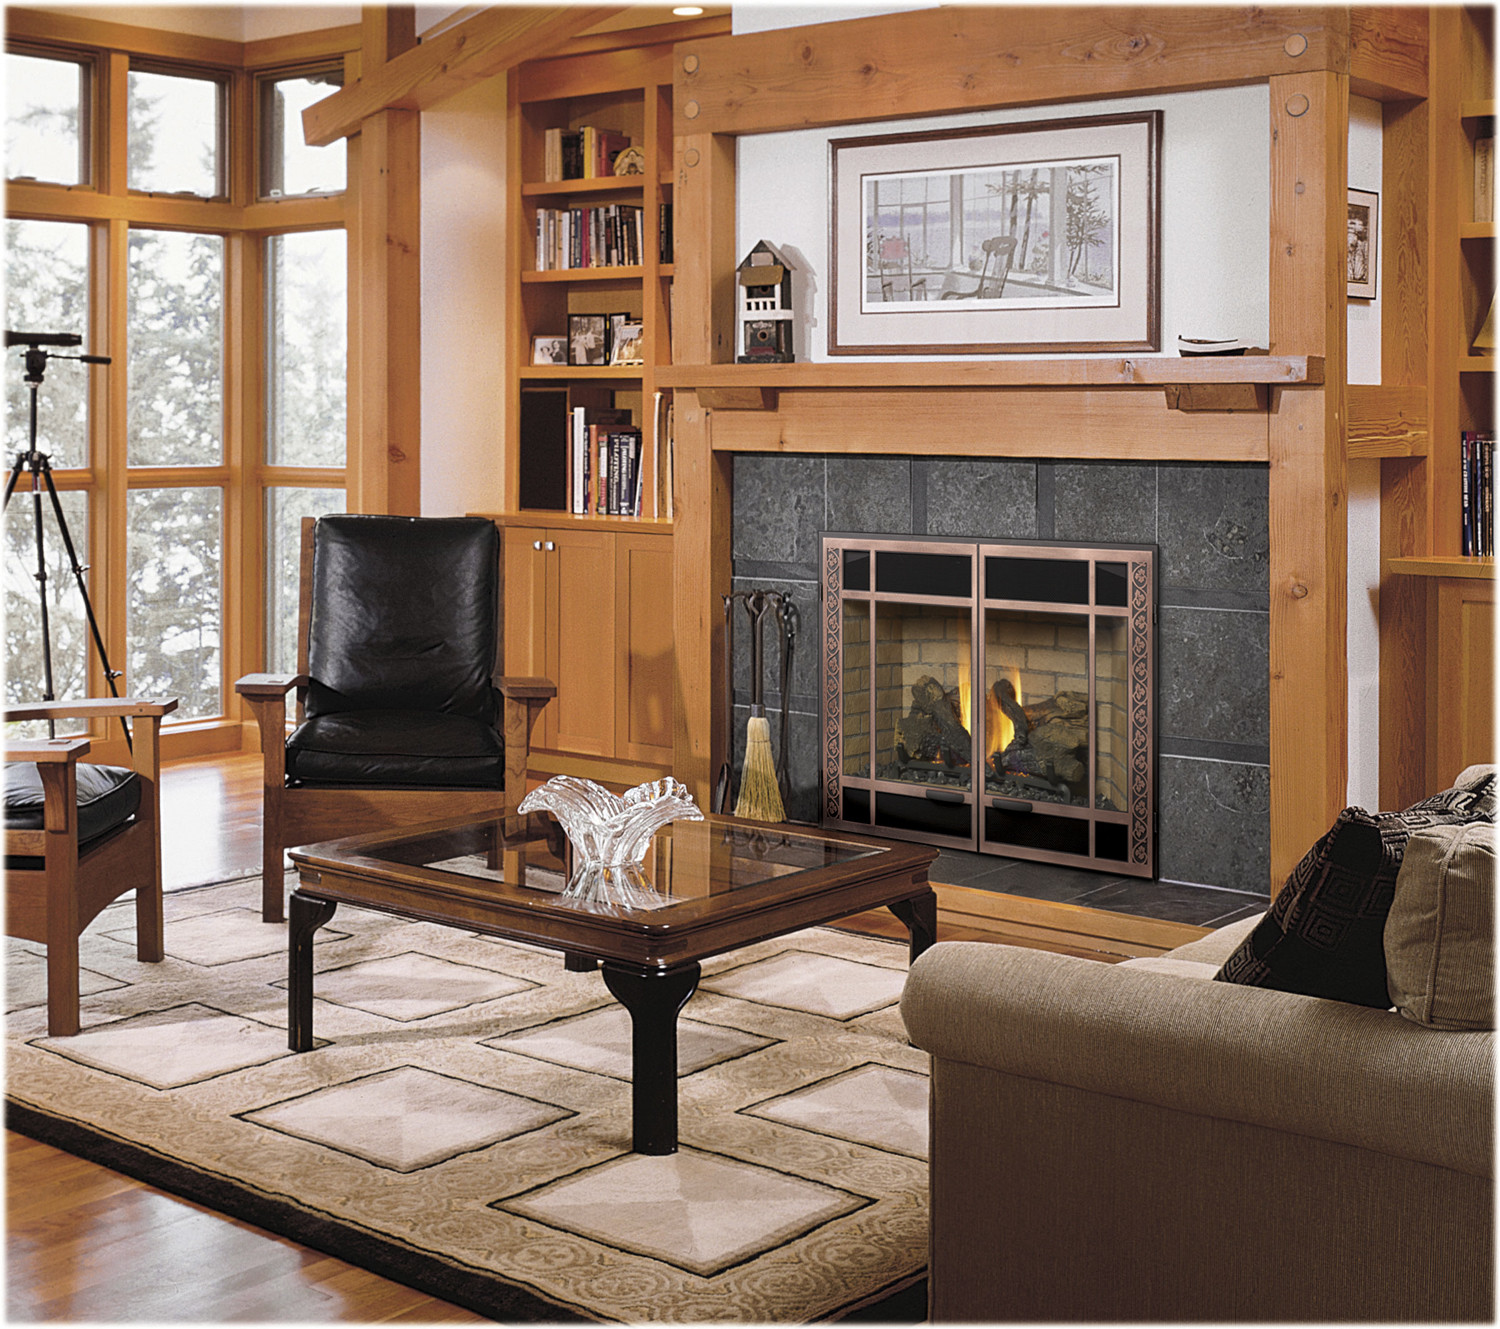 Fireplace Glass Fire Place